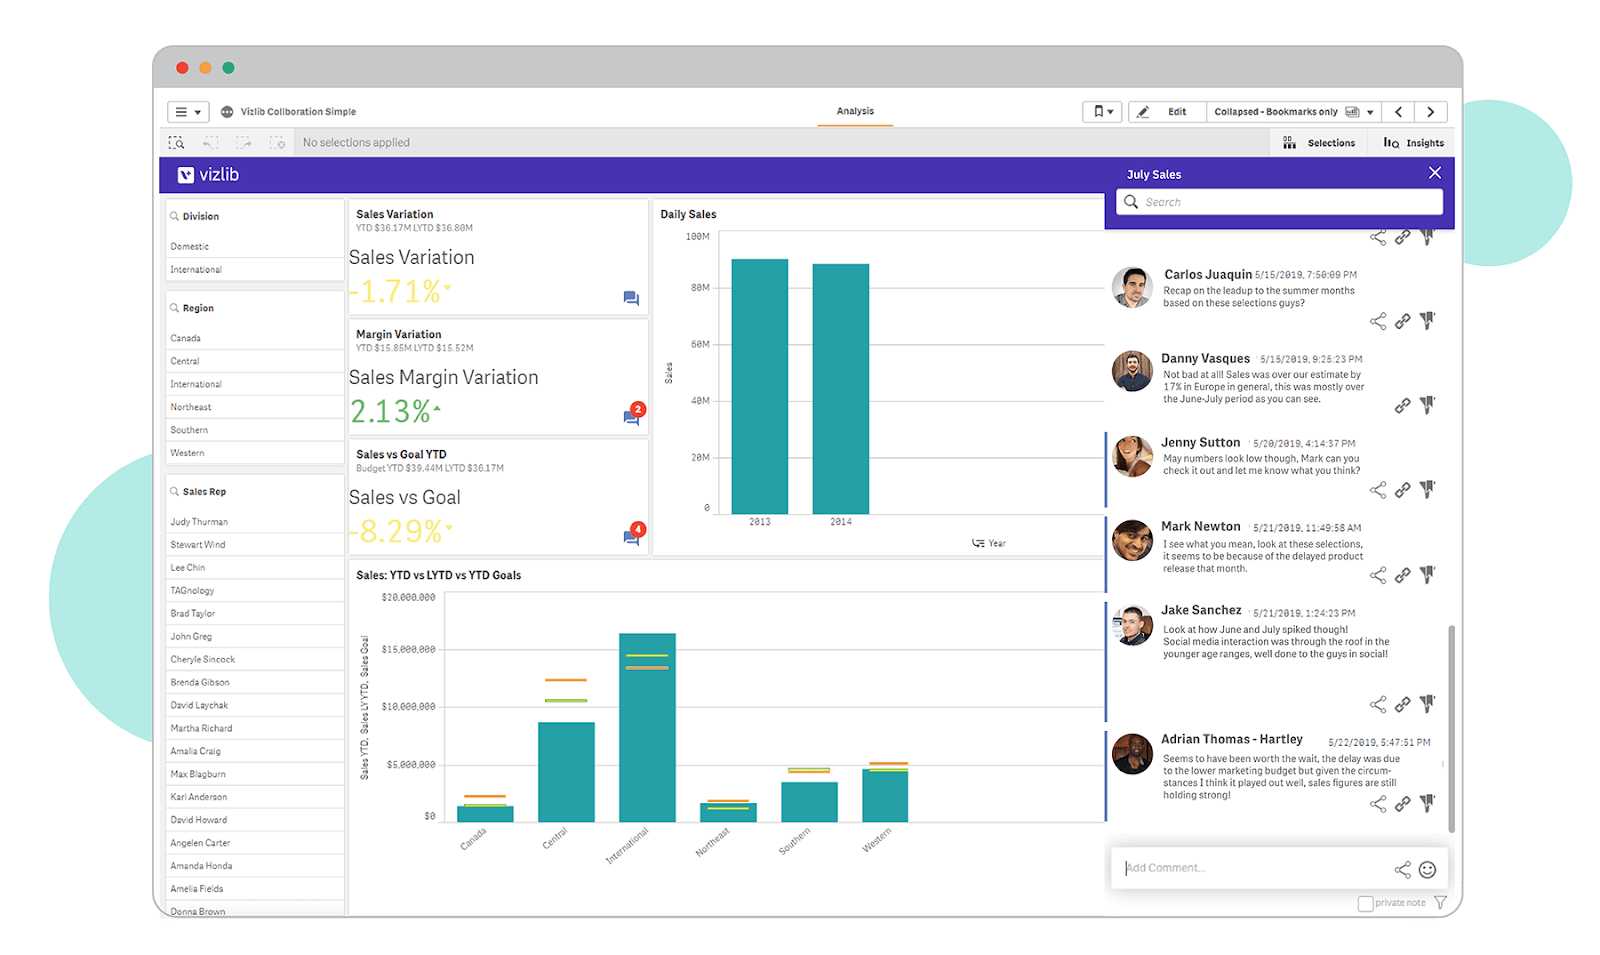 Controllable sharing in an analytics platform